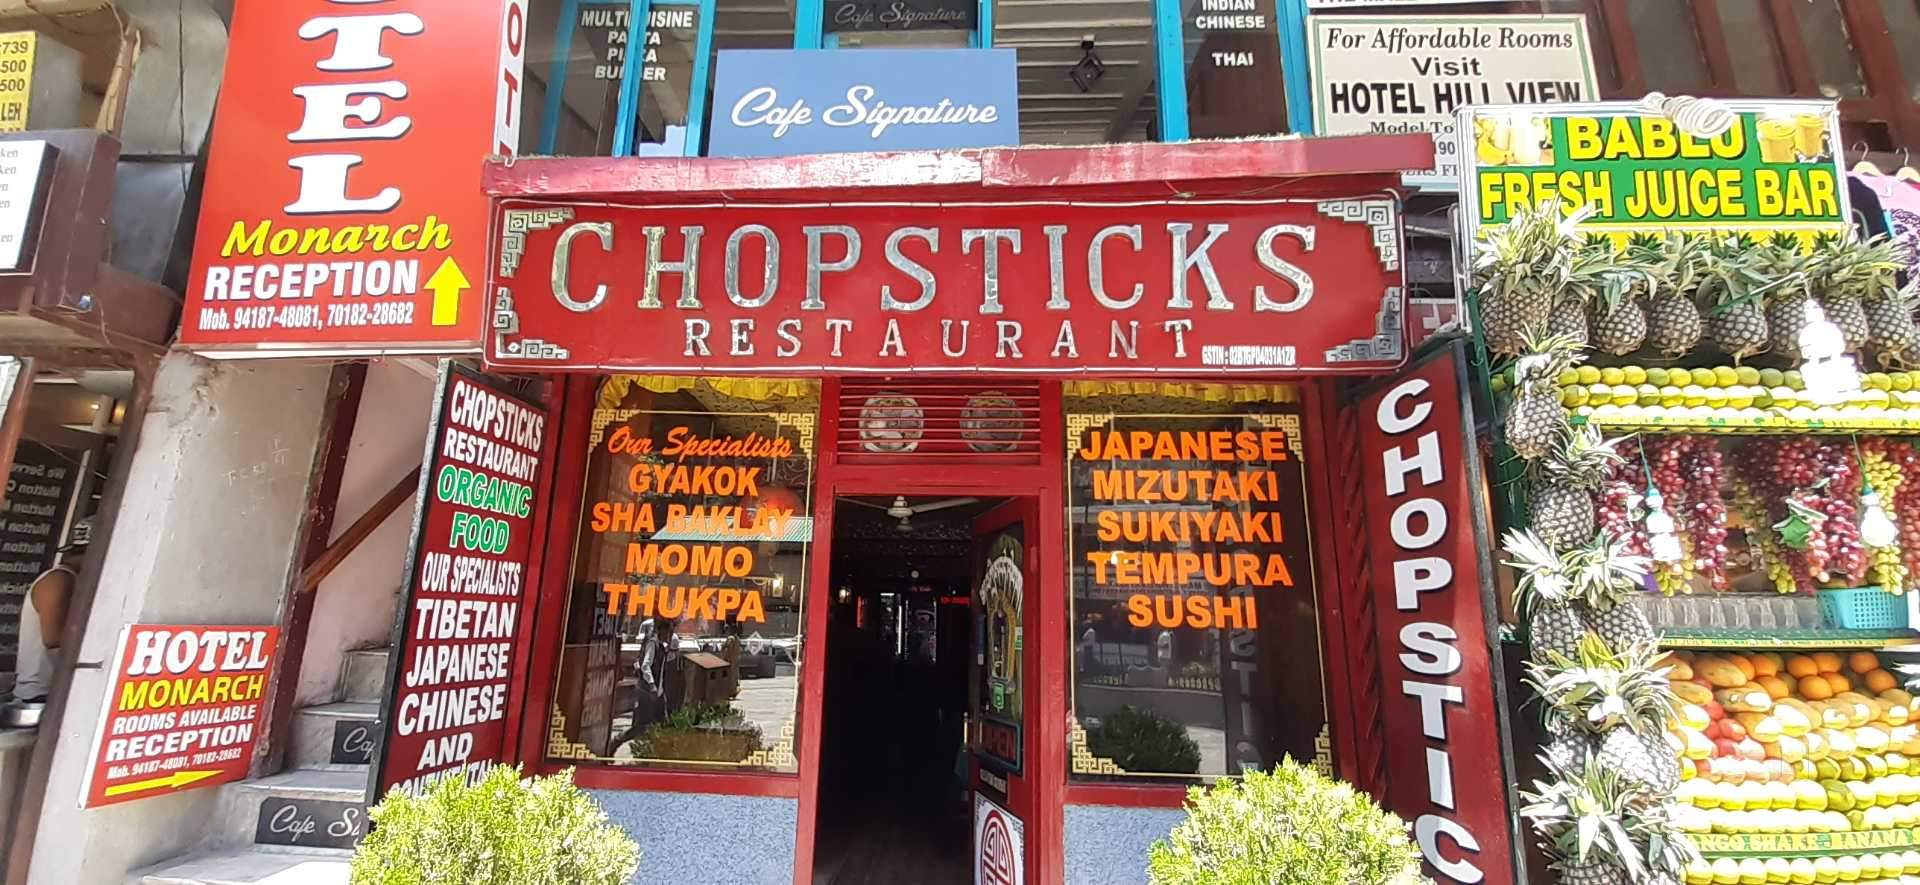 Chopsticks - Top Restaurant to Try When in Manali